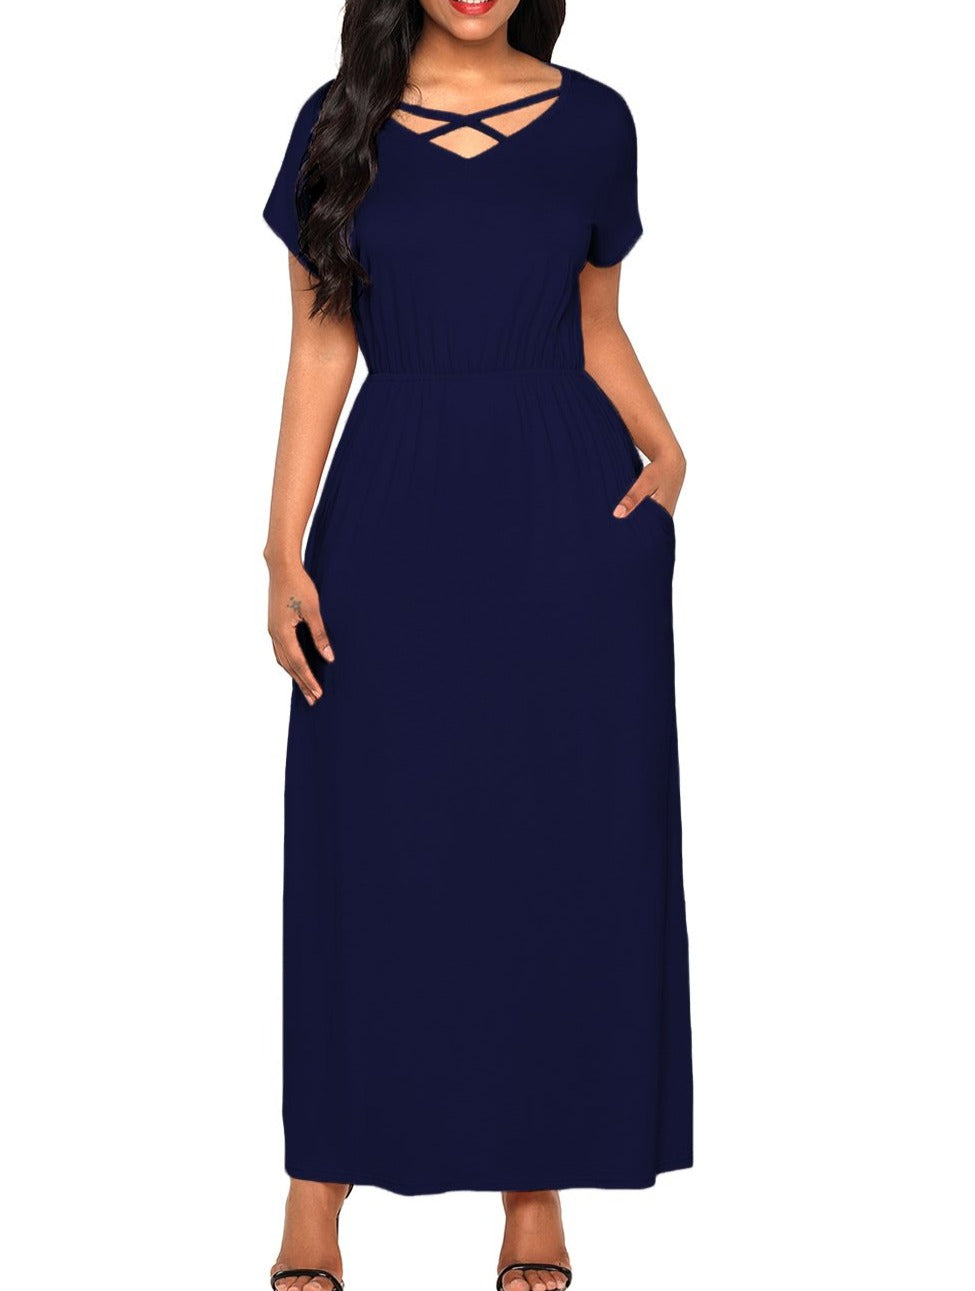 Navy Blue Crisscross V Neck Short Sleeve Maxi Jersey Dress